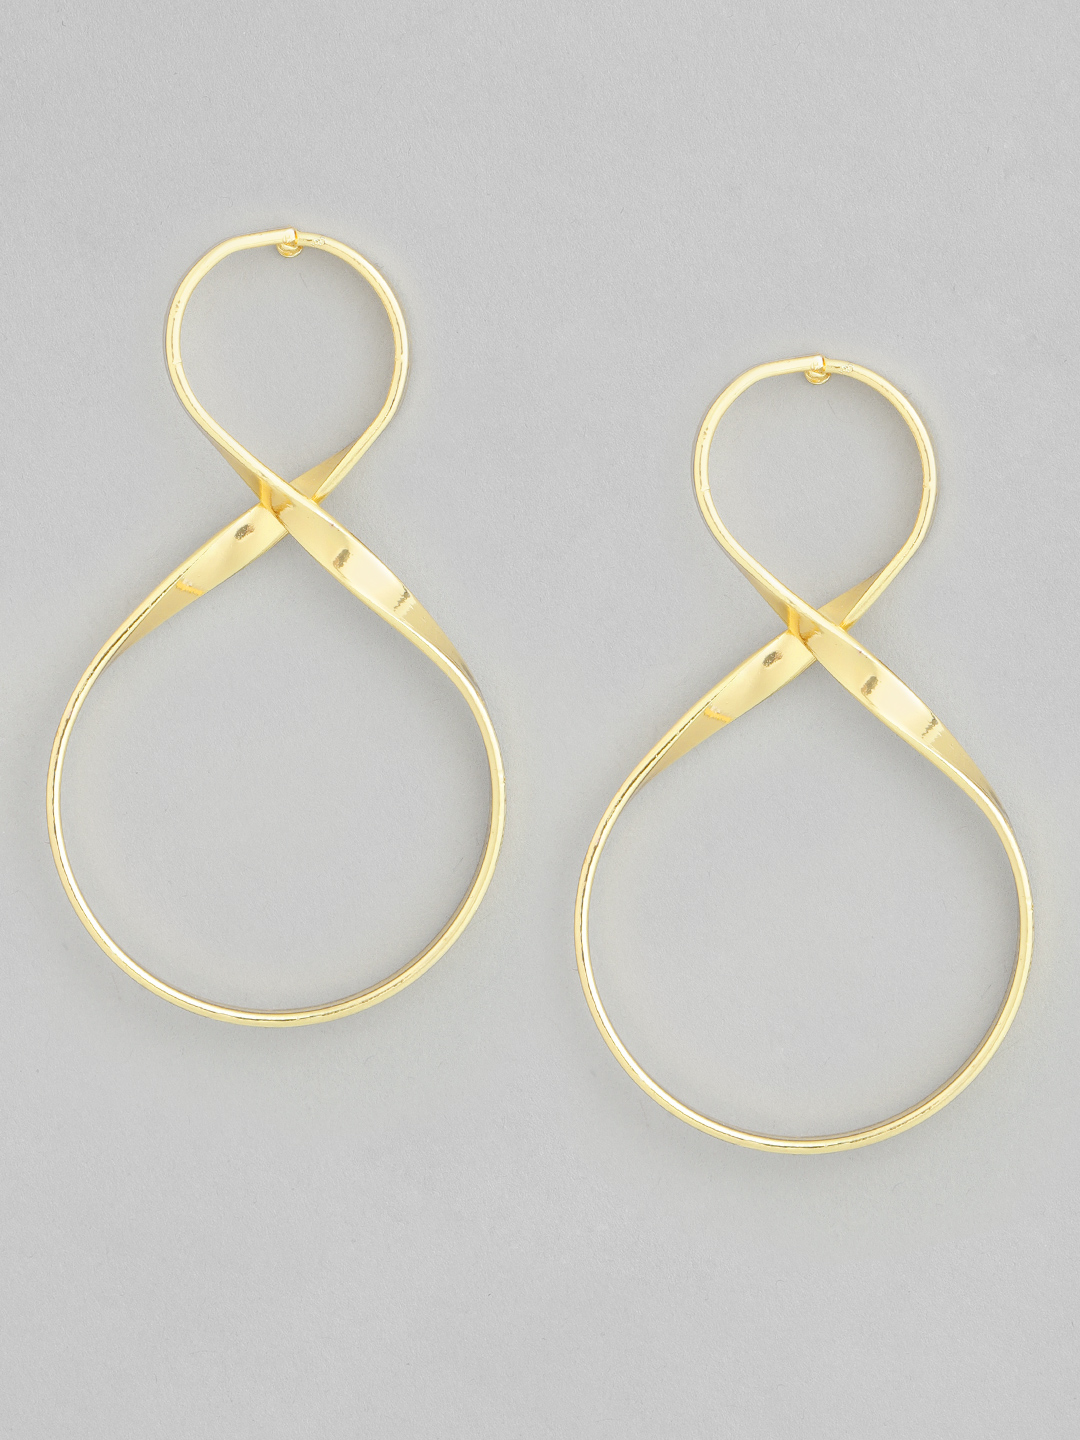 Earrings-Always Loops Around Earrings1